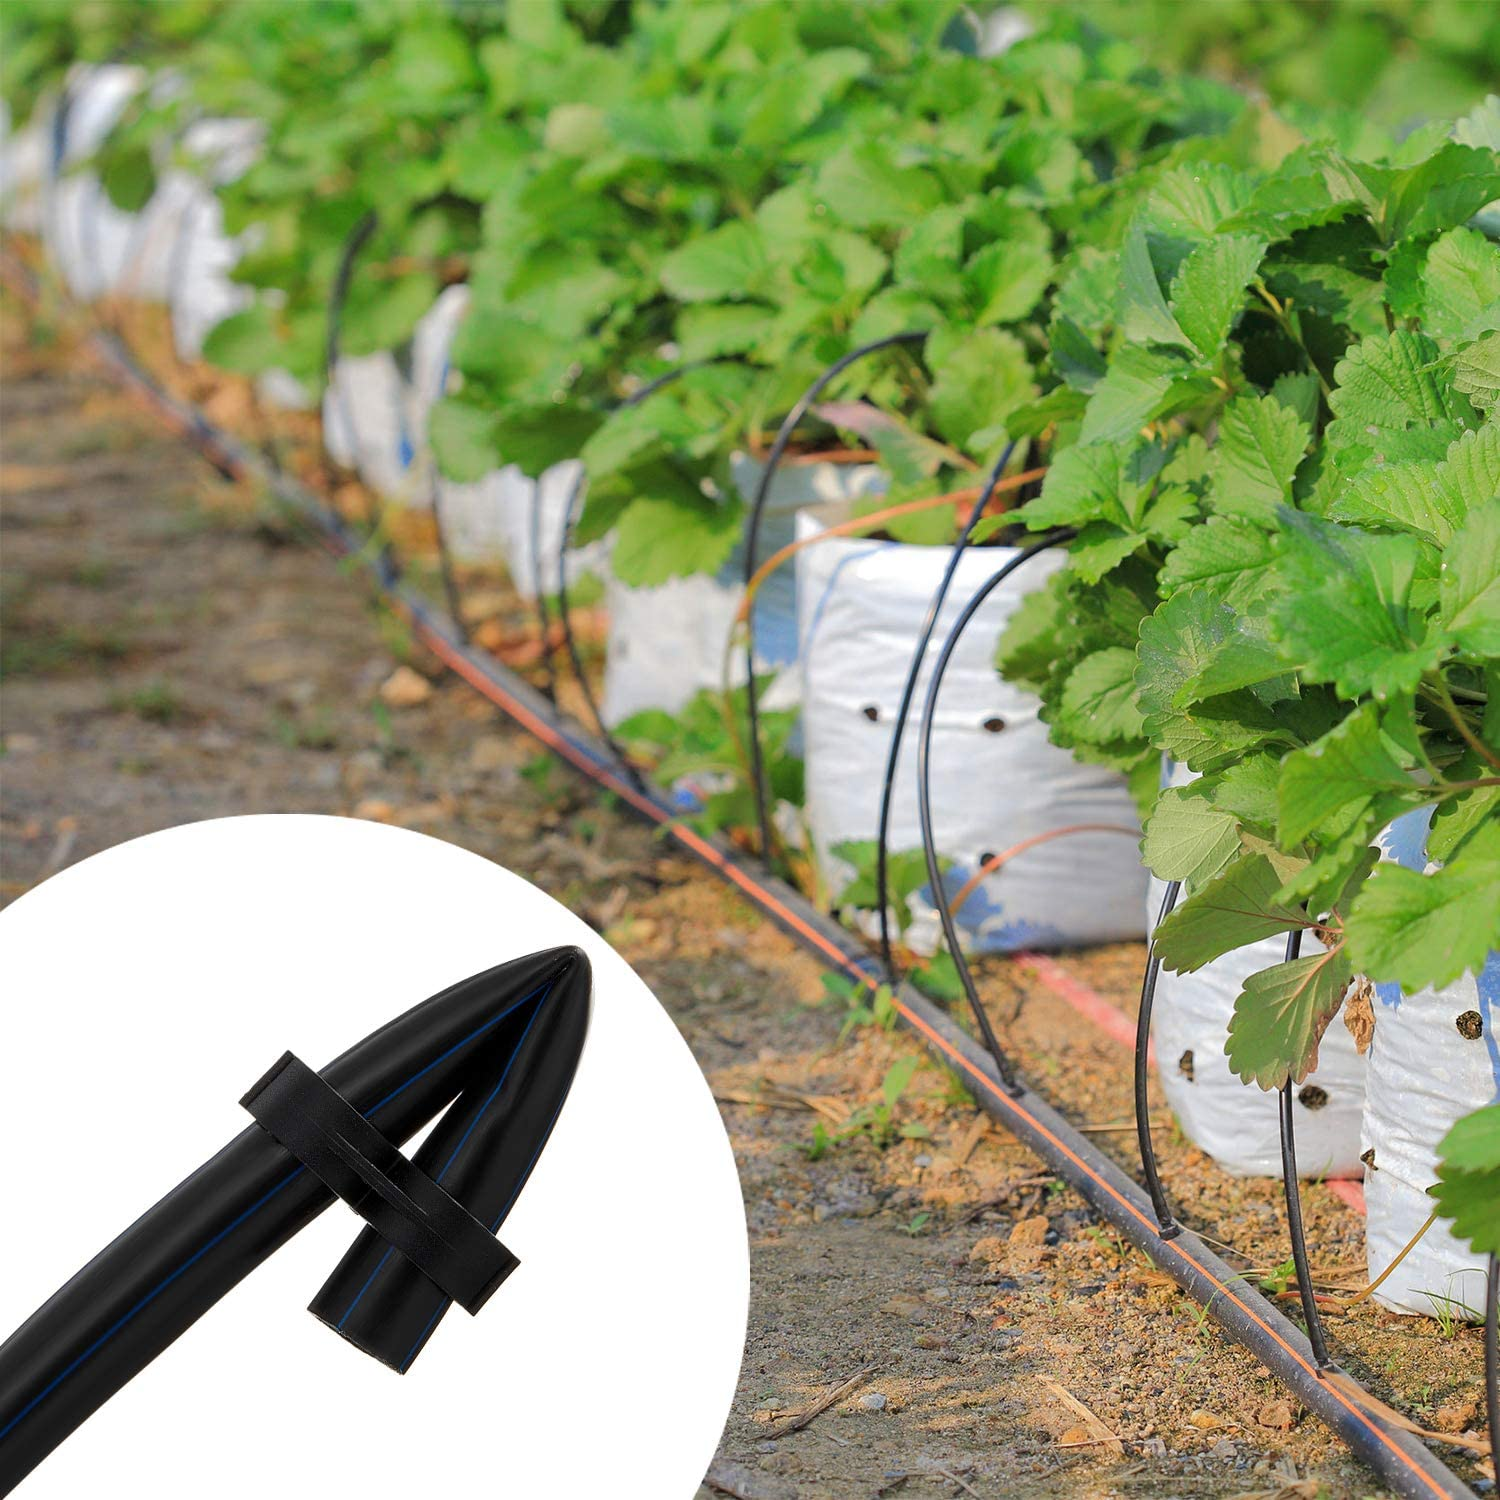 for Garden Greenhouse 17mm Flower Bed Lawn Mudder 50 Pieces 1//2 Inch Drip Tubing End Irrigation Tubing End Cap Drip Irrigation Black Figure for 1//2 Inch Tubing 0.600 inch ID